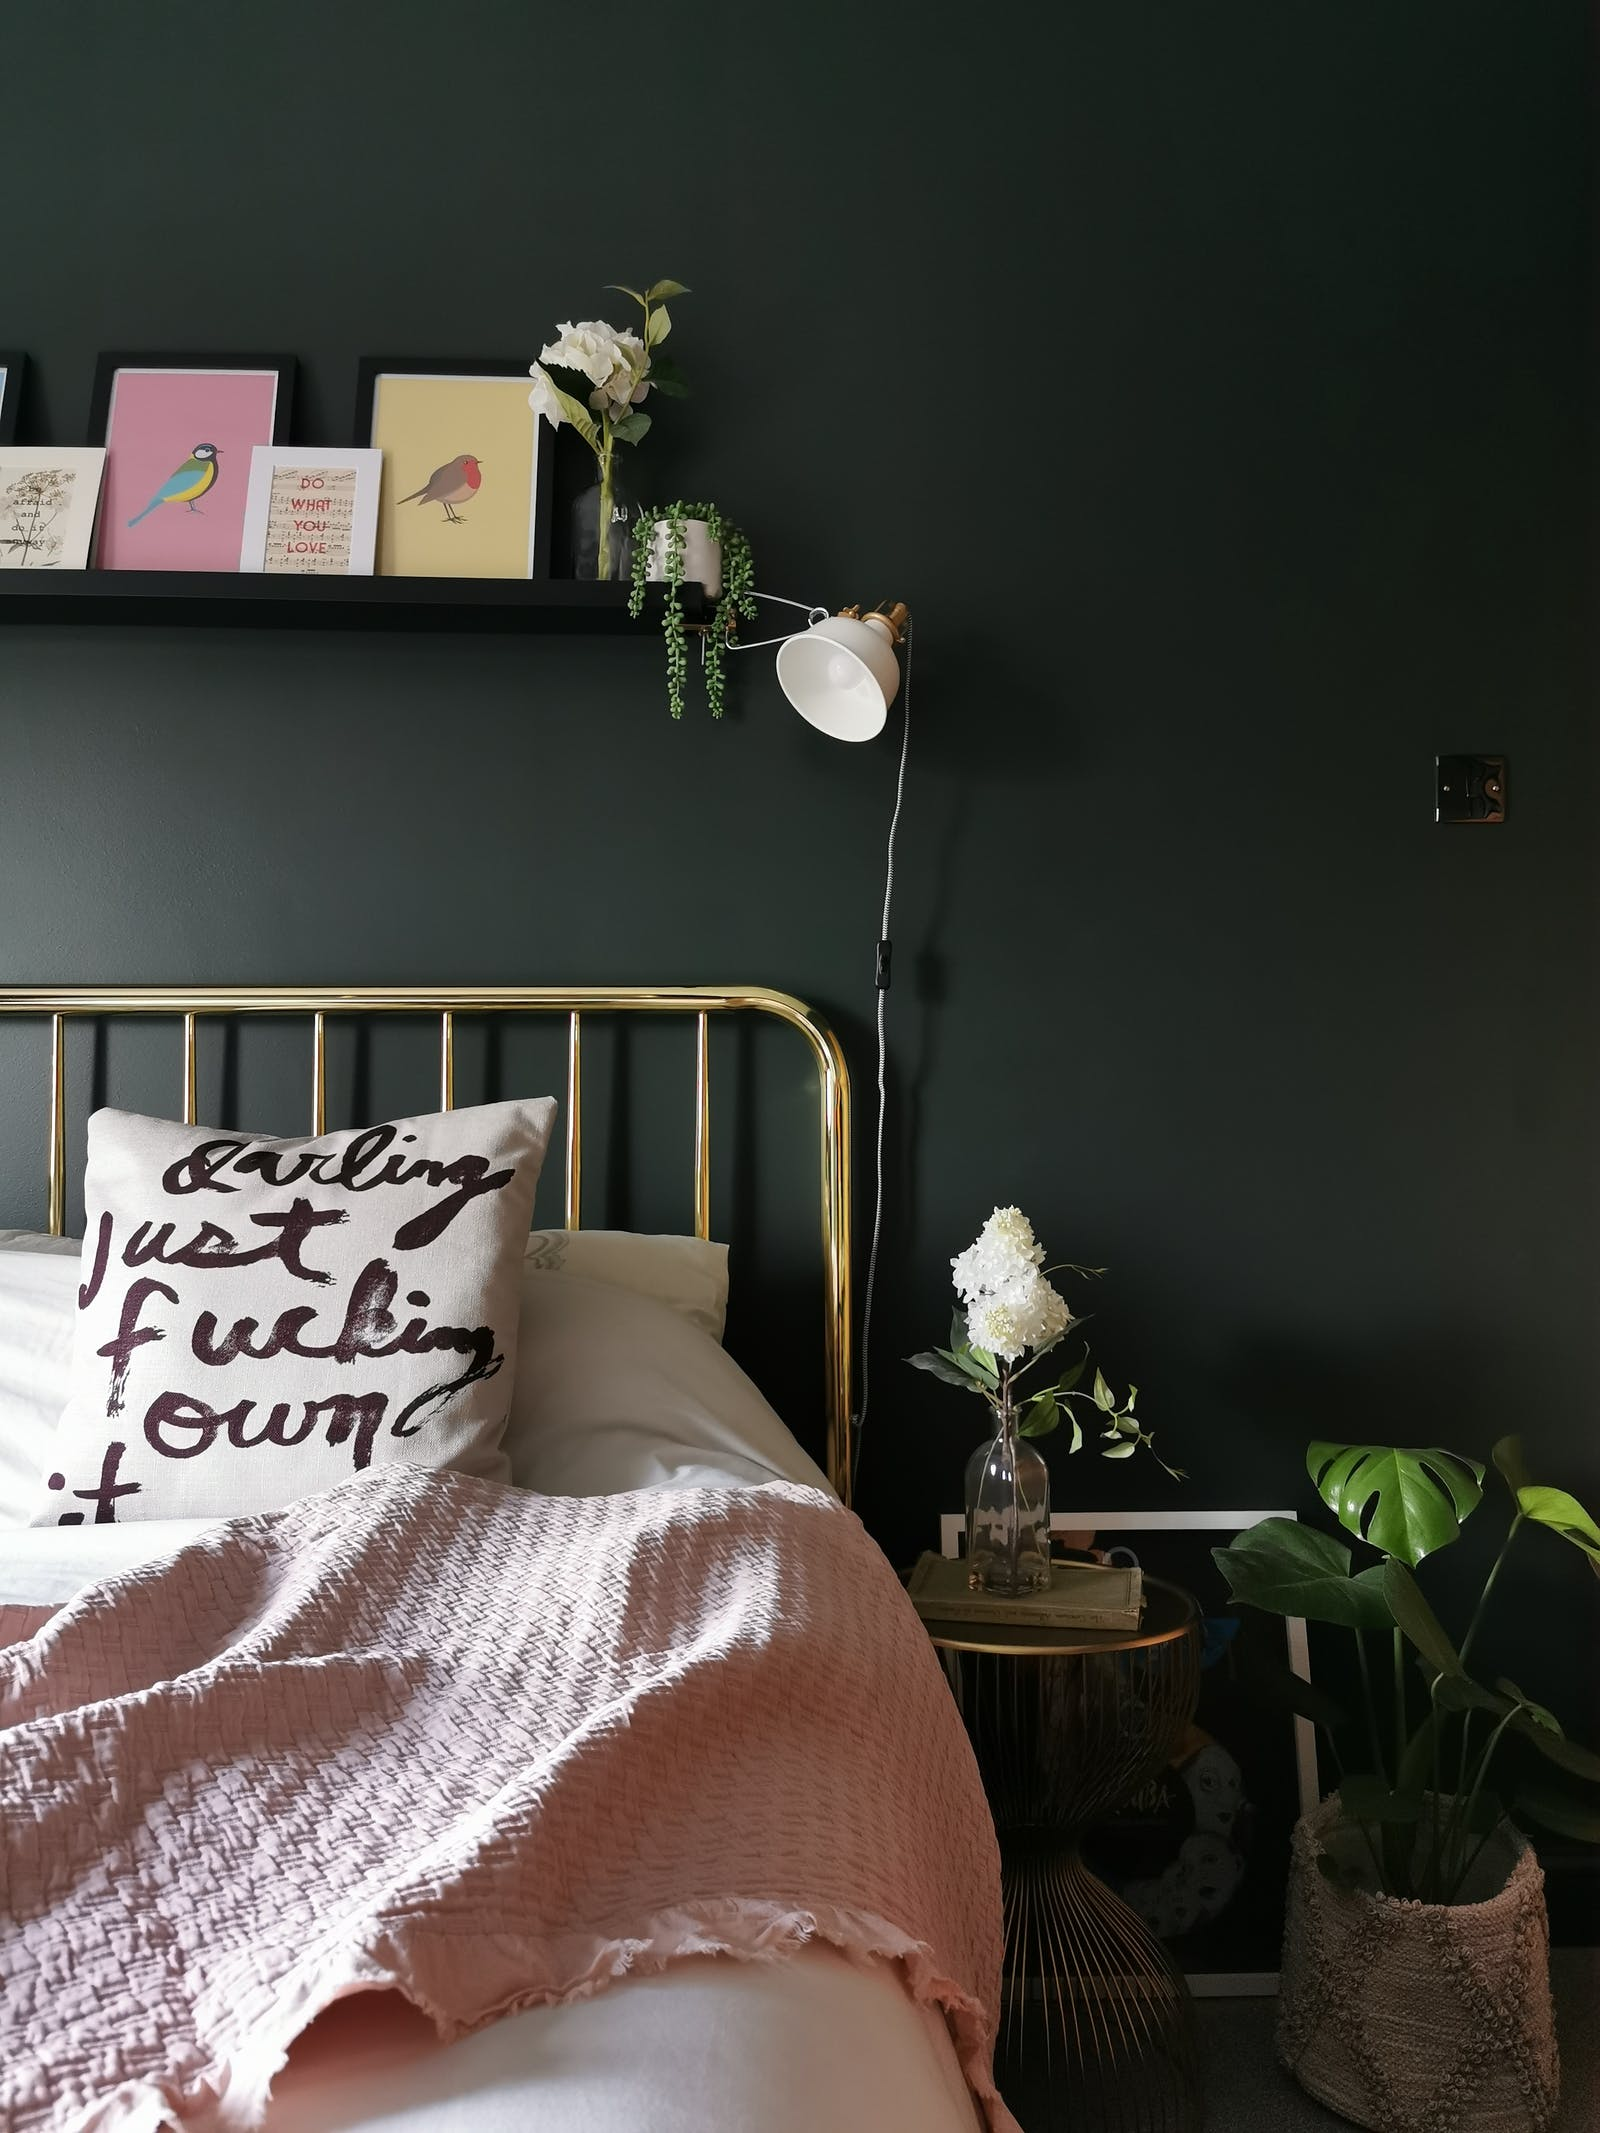 Bedroom in dark green with plants and wall decoration